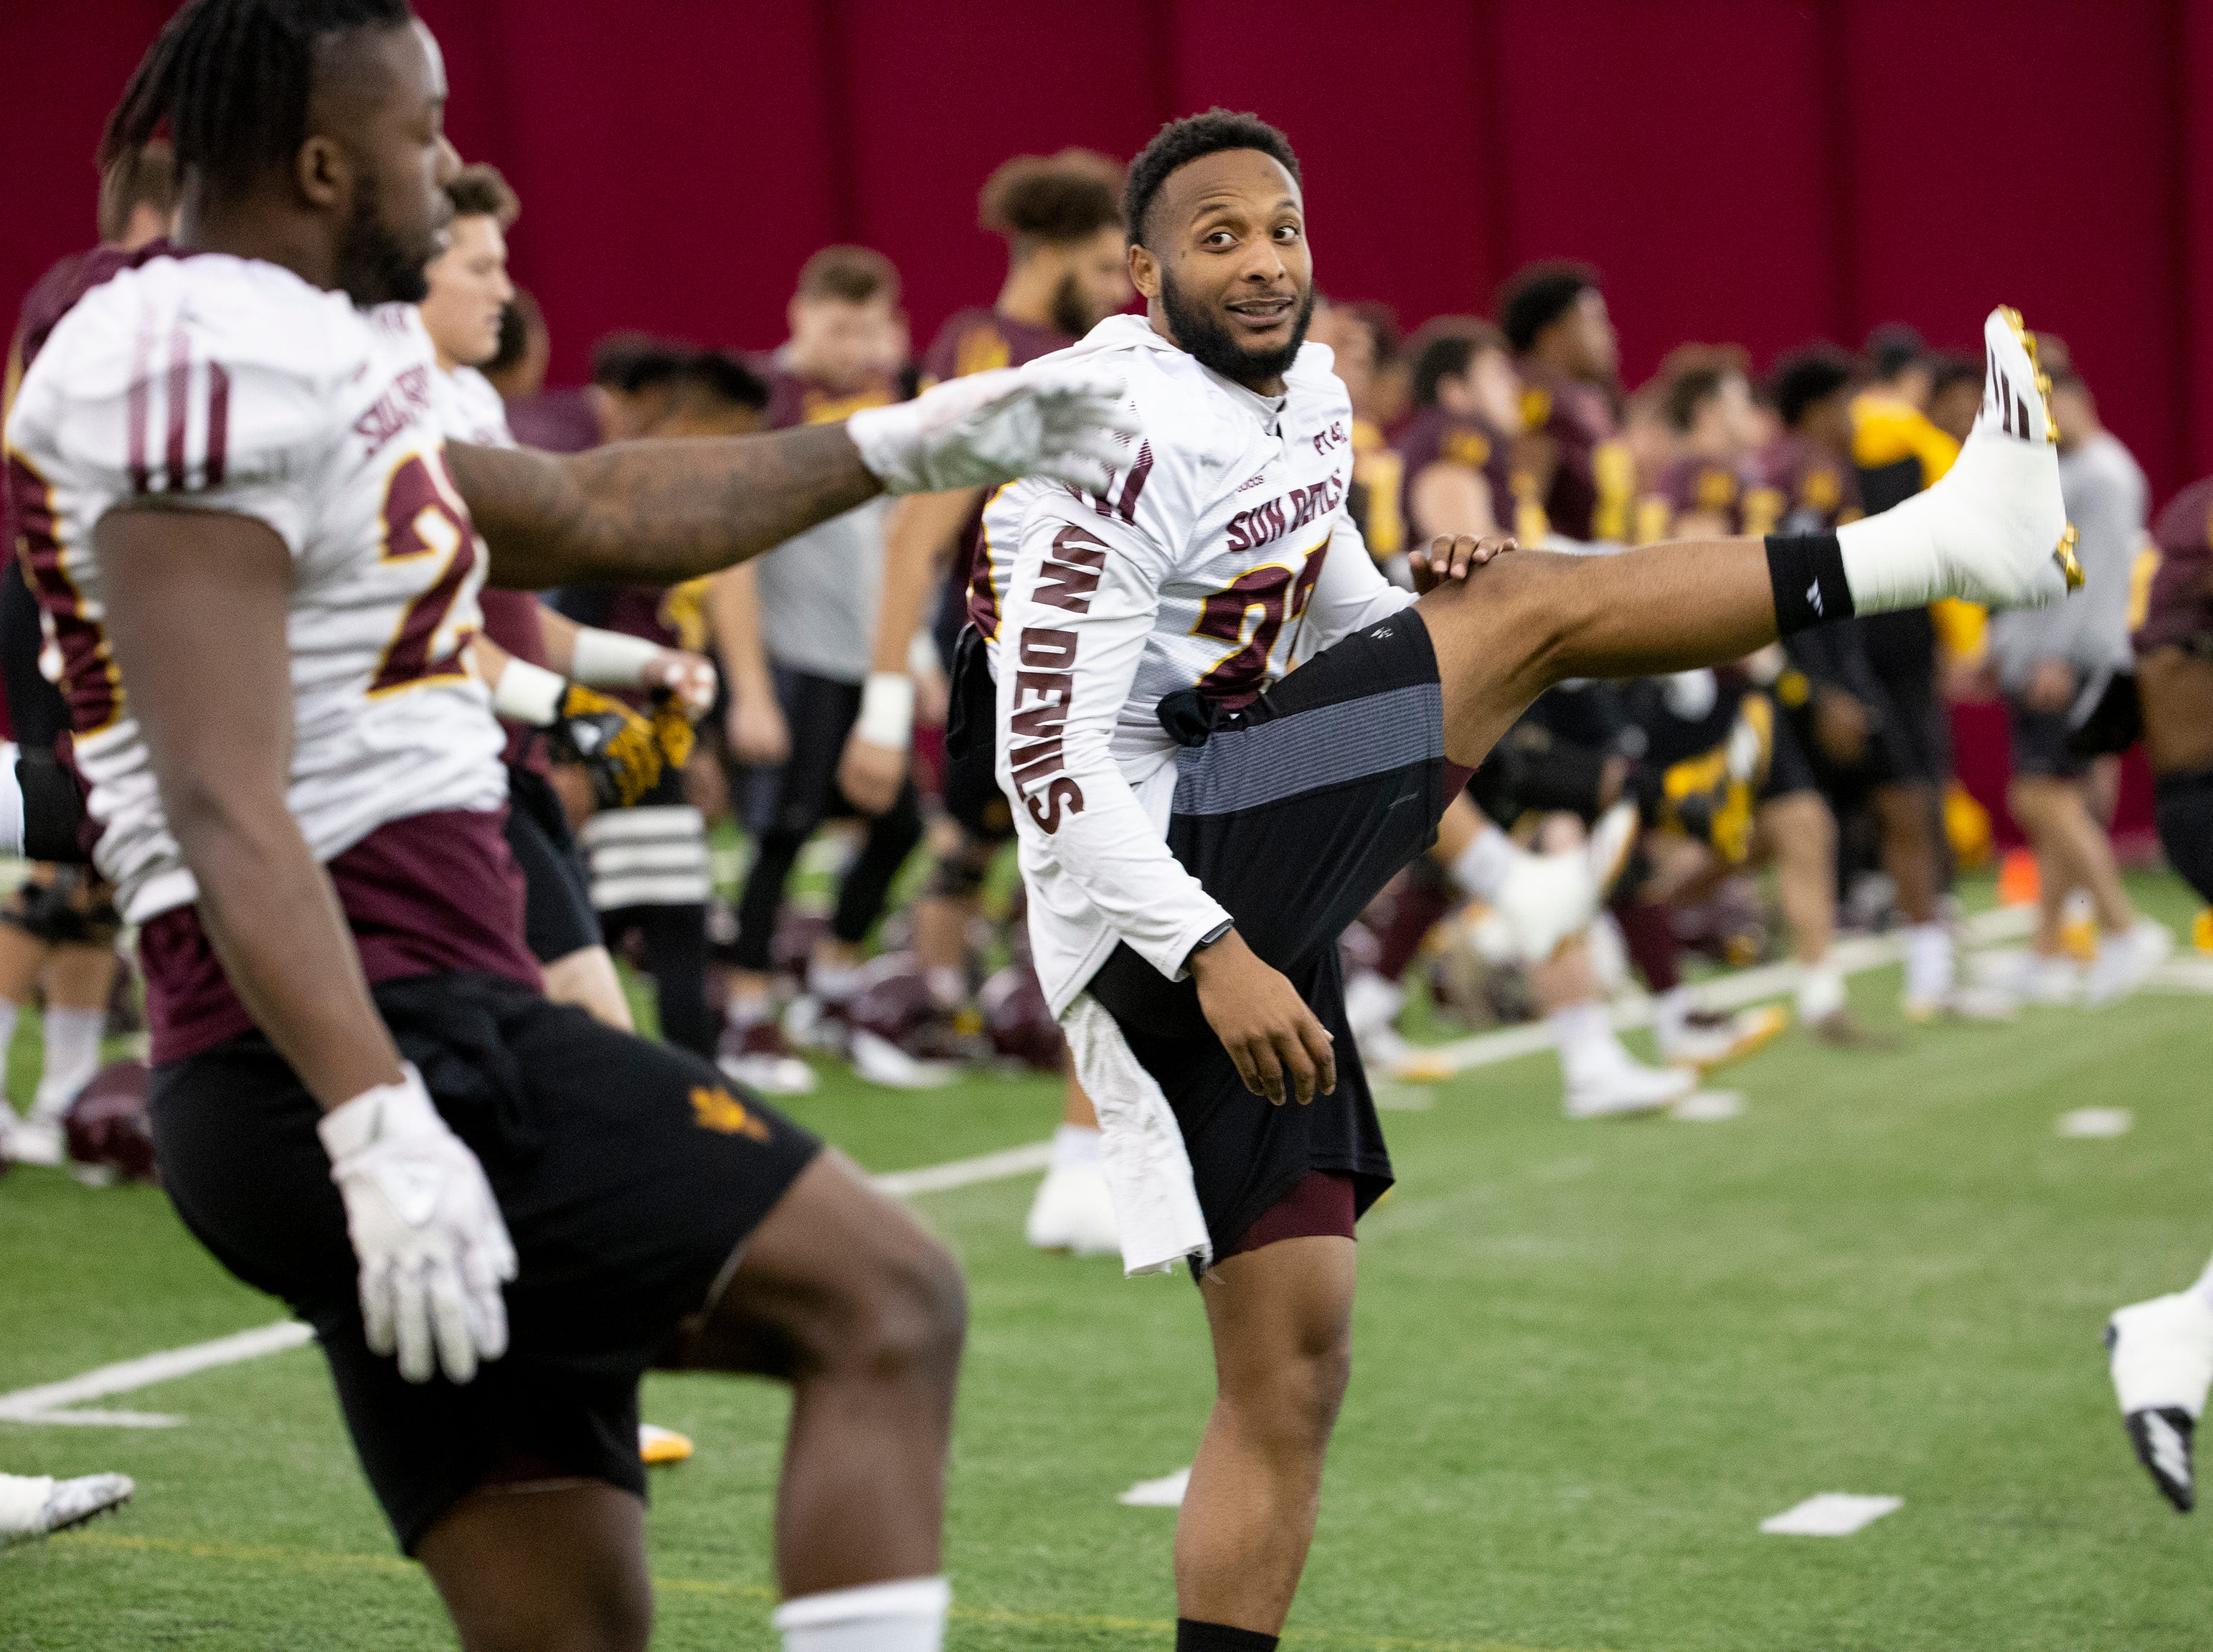 Linebacker Tyler Whiley warms up during ASU spring football practice in the Verde Dickey Dome in Tempe on February 21.